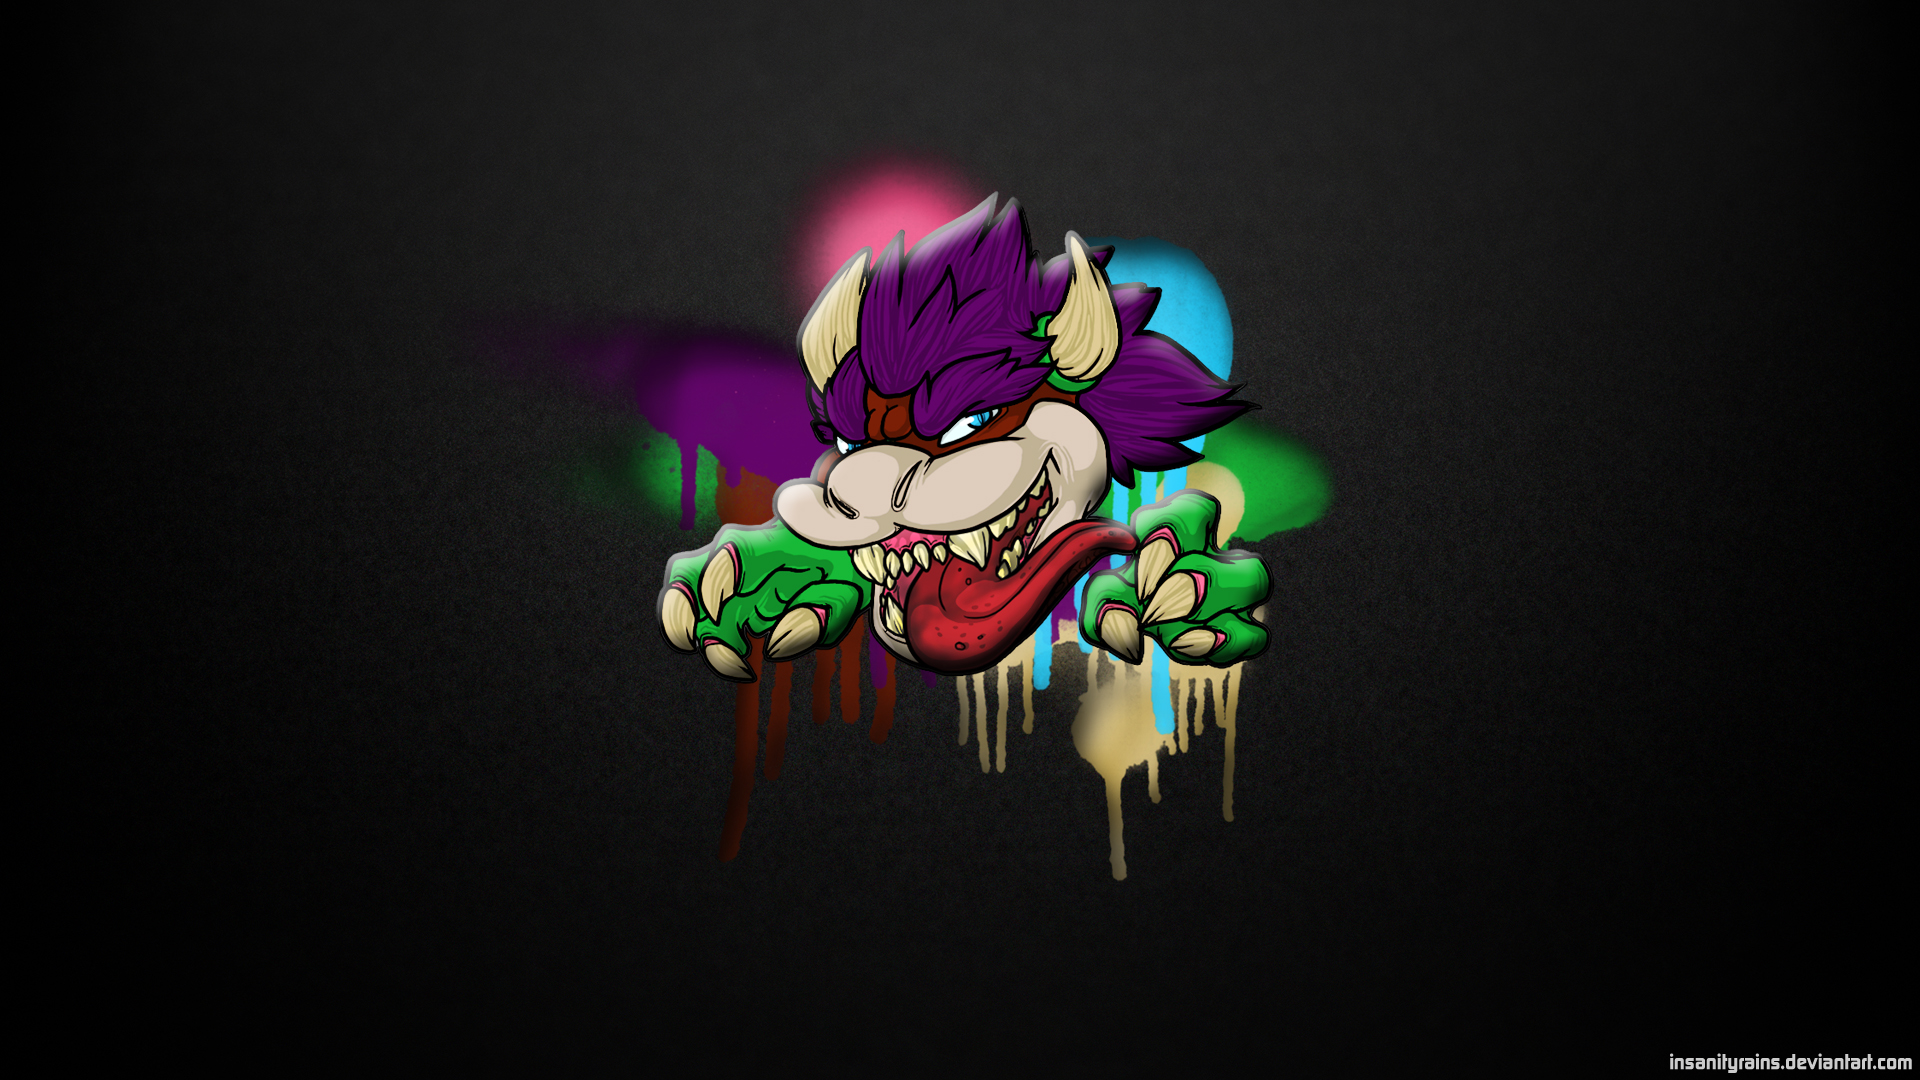 bowser remix wallpaper 1920x1080 by insanityrains on